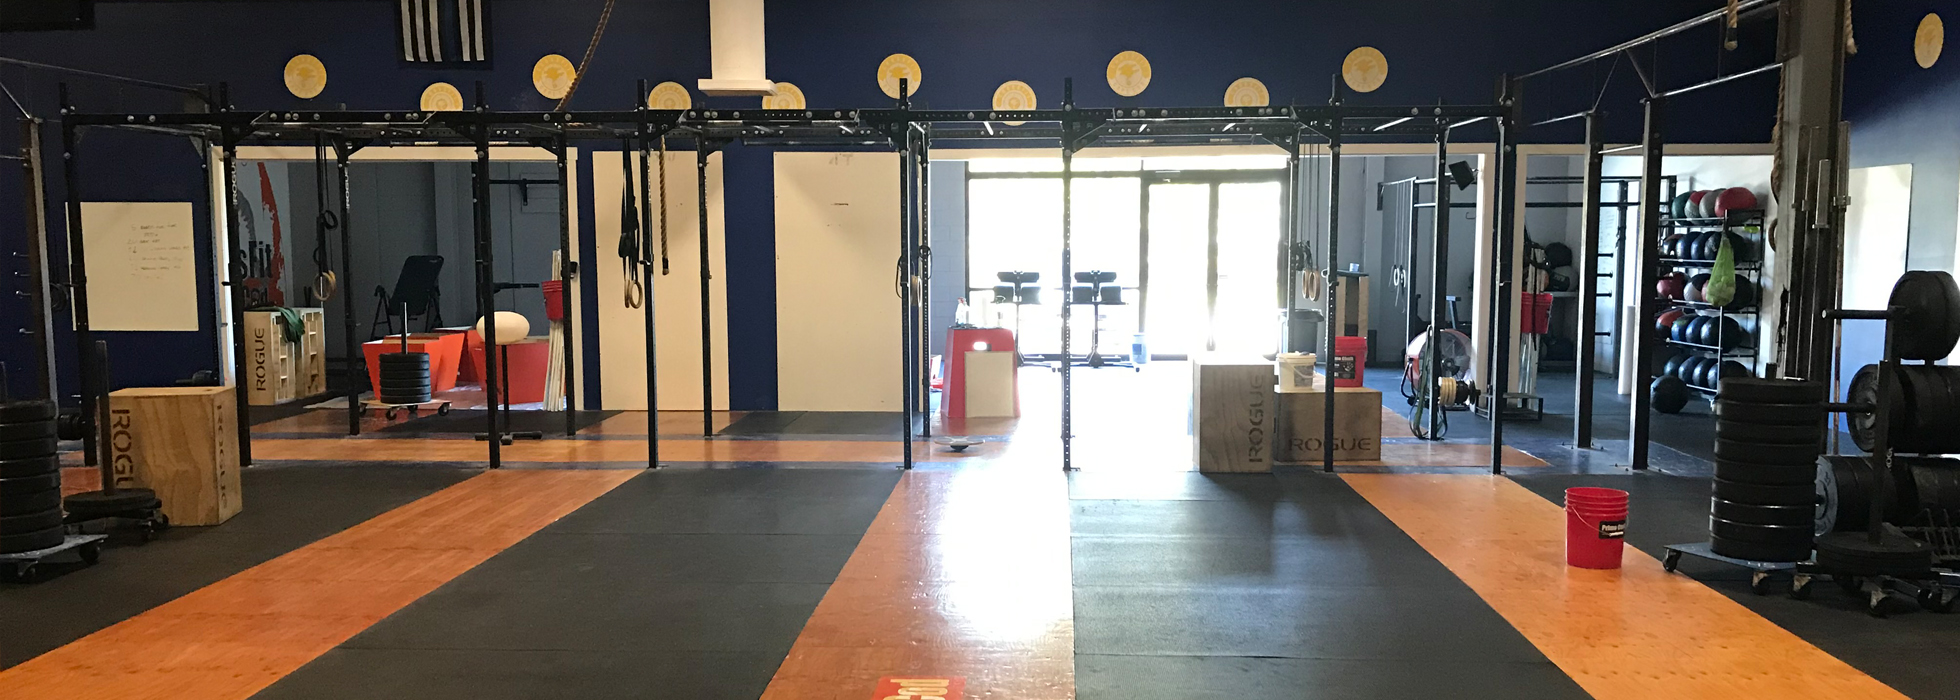 A Gym near Mashpee MA That Can Help With Weight loss & Dieting, A Gym near Cape Cod MA That Can Help With Weight loss & Dieting, A Gym near Falmouth MA That Can Help With Weight loss & Dieting, A Gym near Bourne MA That Can Help With Weight loss & Dieting, A Gym near Sandwich MA That Can Help With Weight loss & Dieting